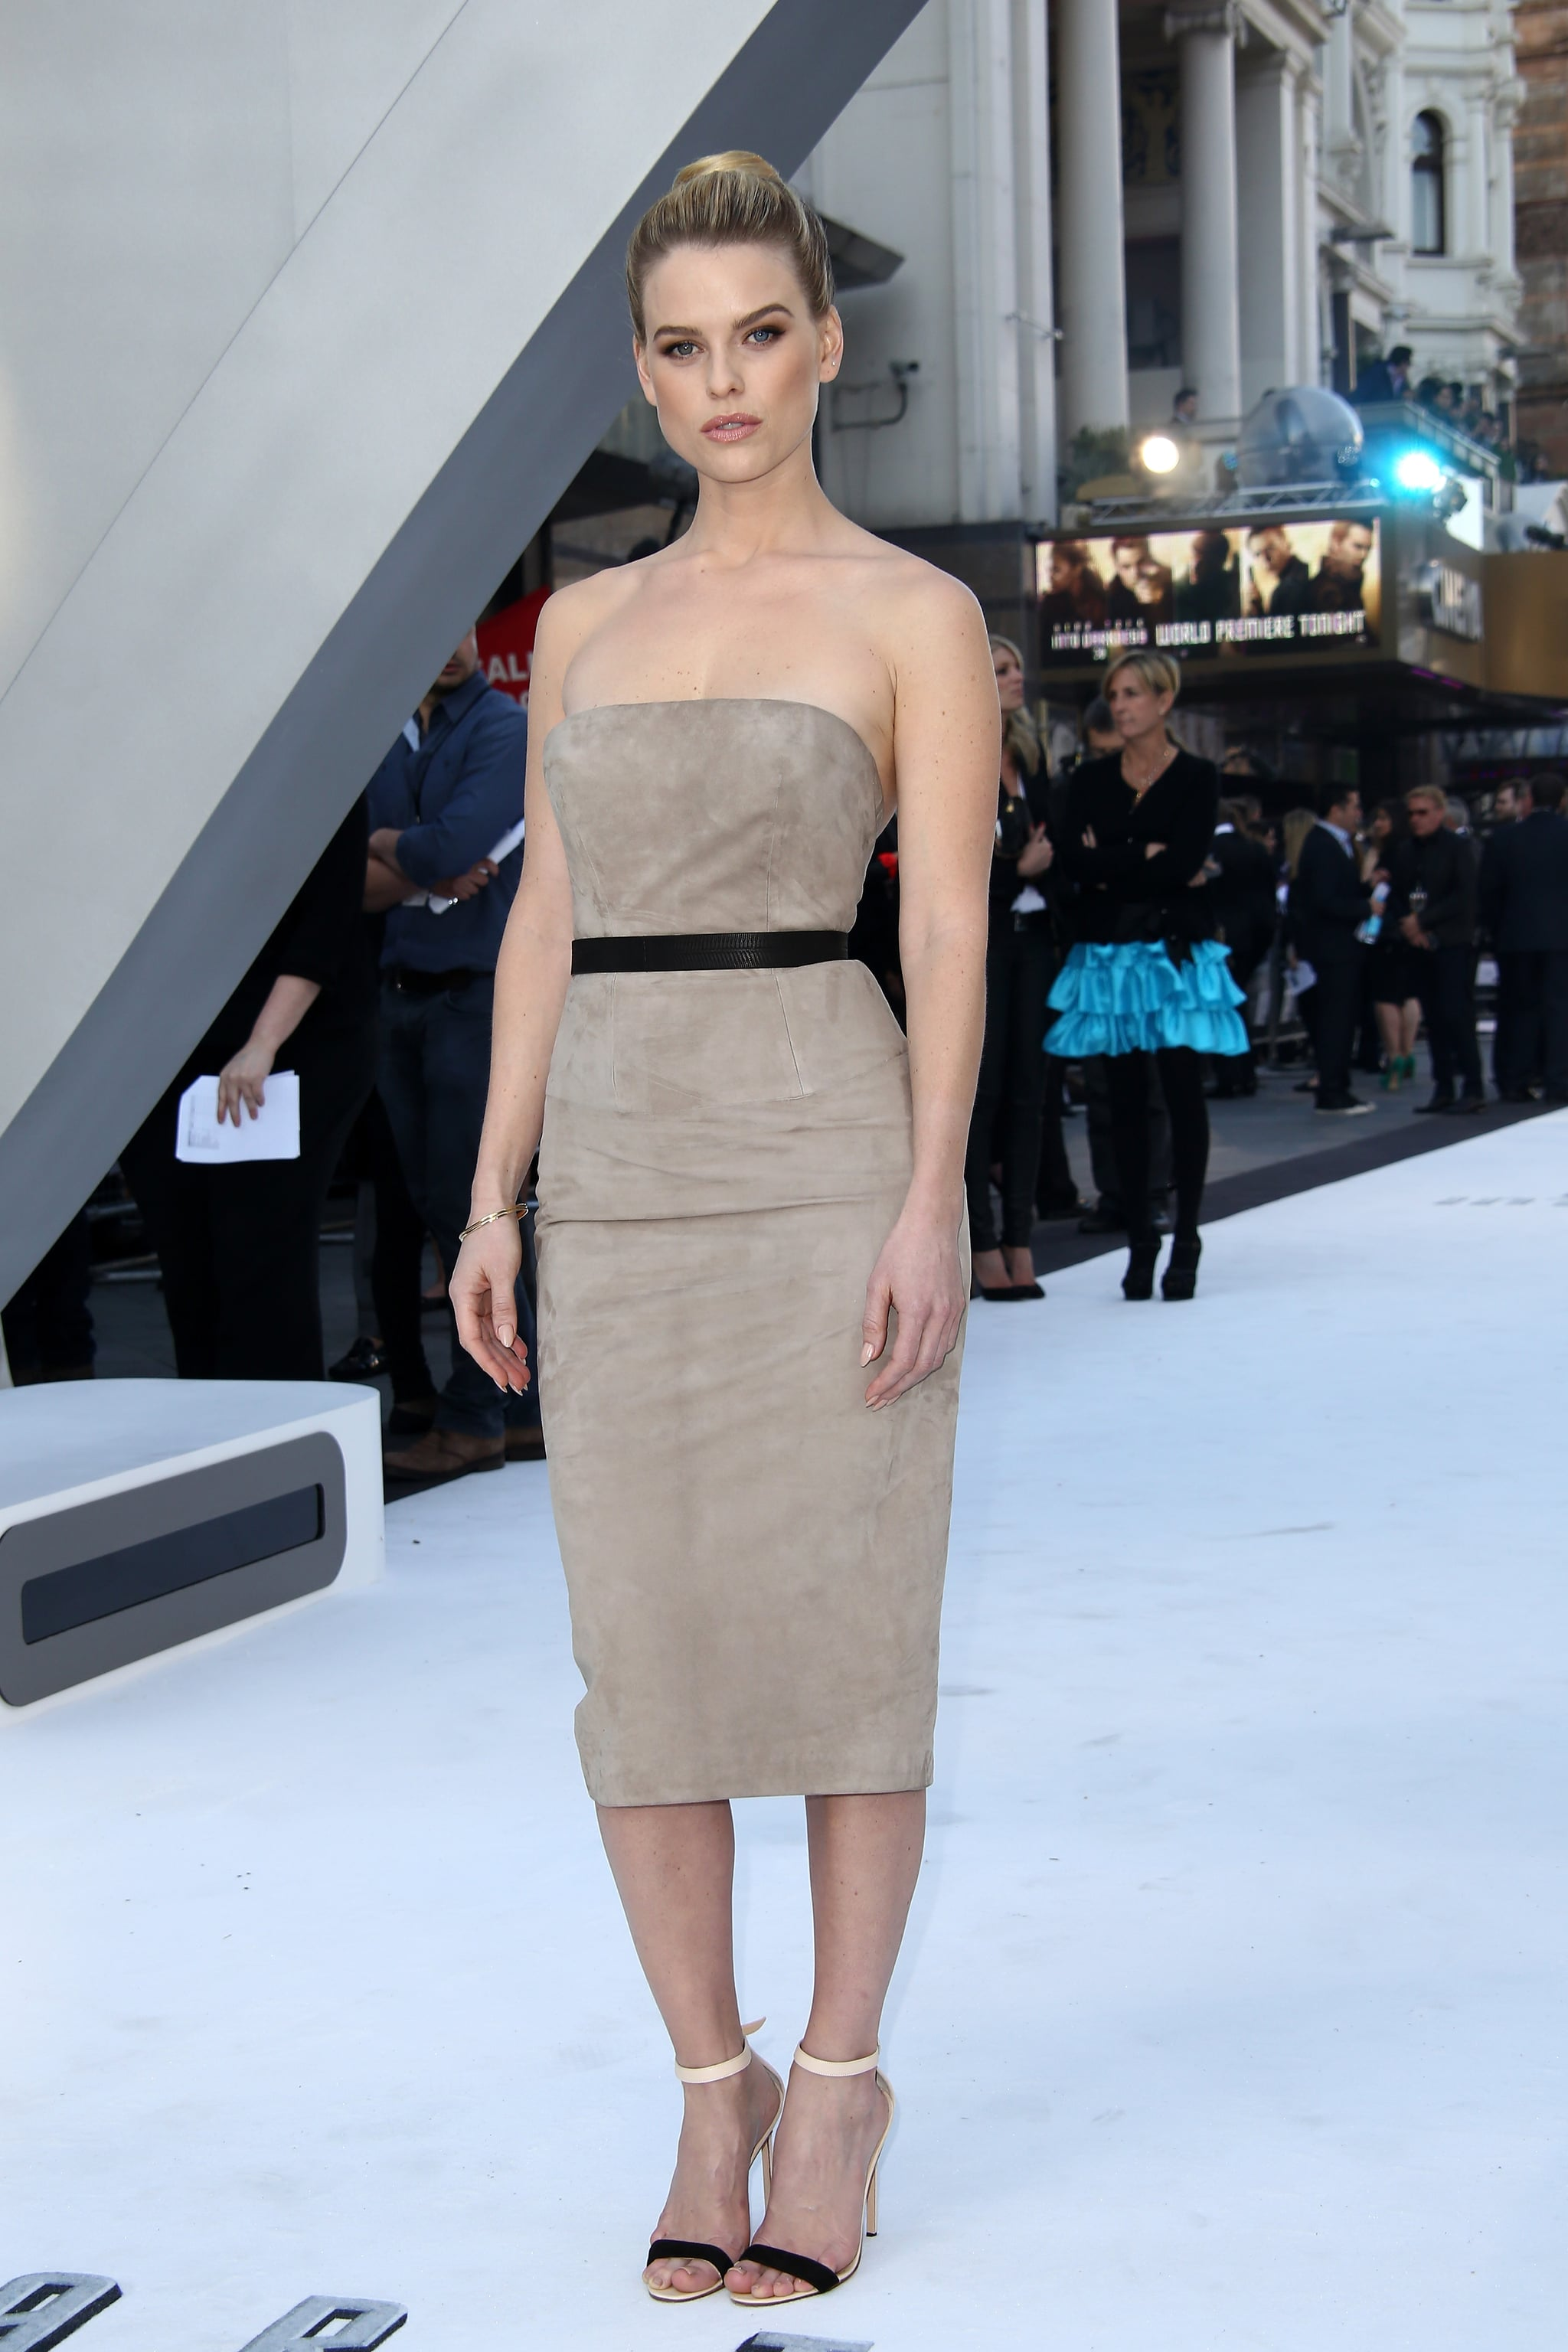 Alice Eve's taupe suede strapless midi dress was muted but certainly not boring at the London premiere. A black leather belt cinched her waist, while two-toned ankle-strap sandals were a beautifully elegant touch.